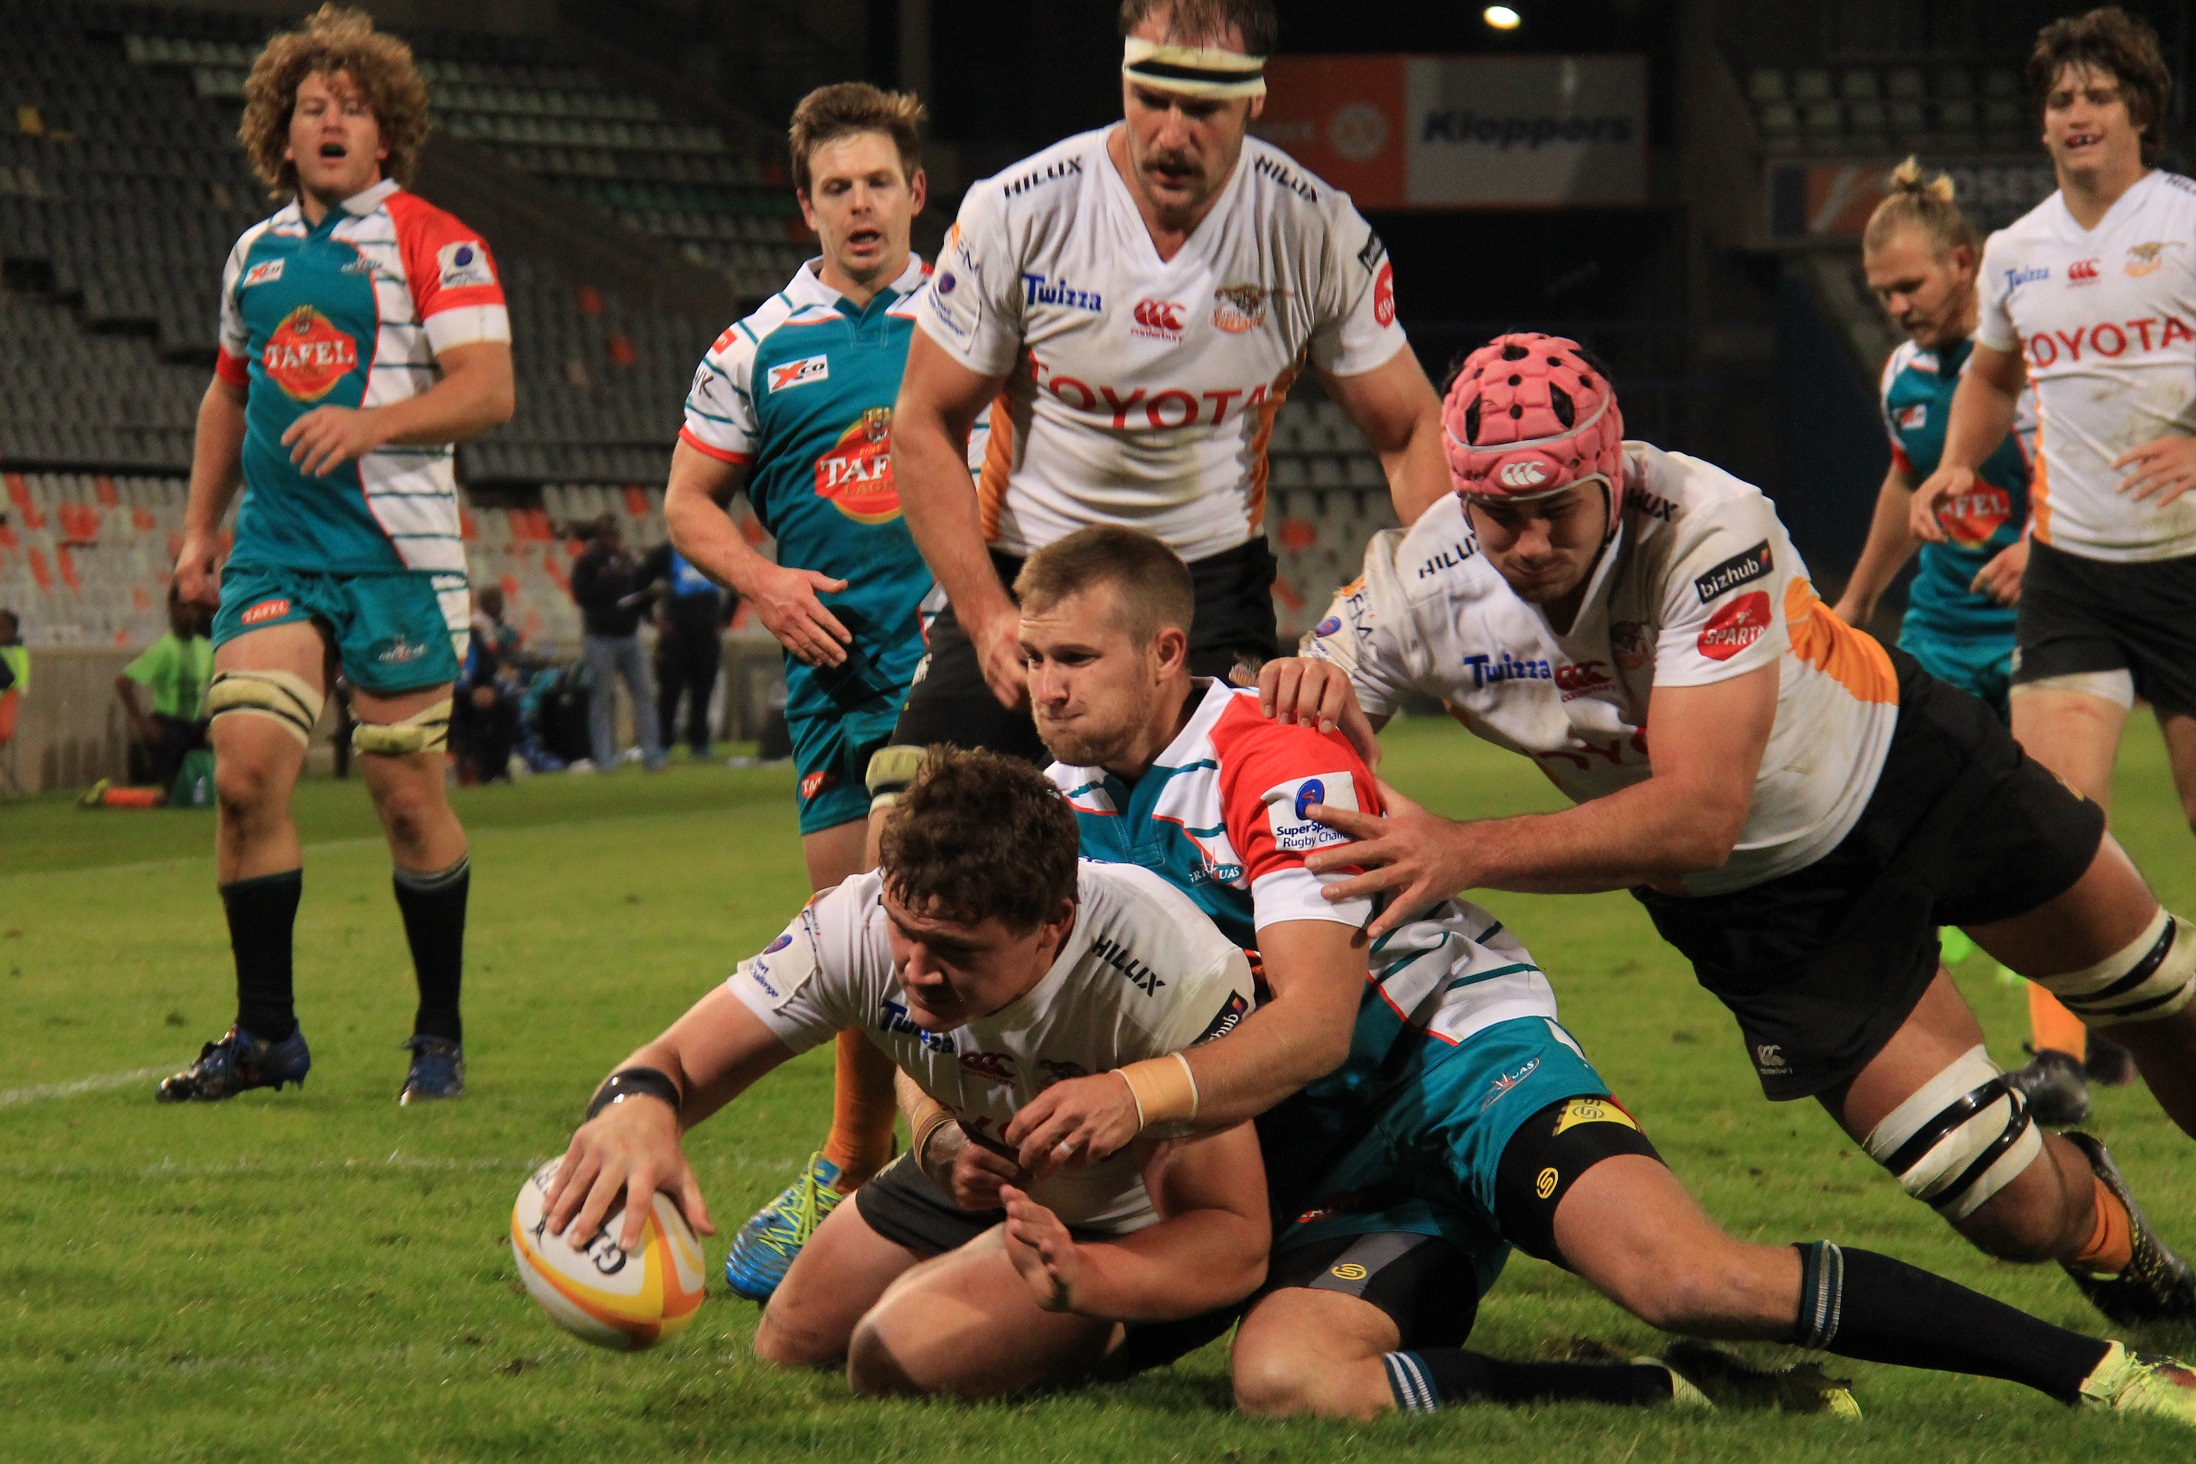 Free State to face Griquas in semi-final - Bloemfontein ...